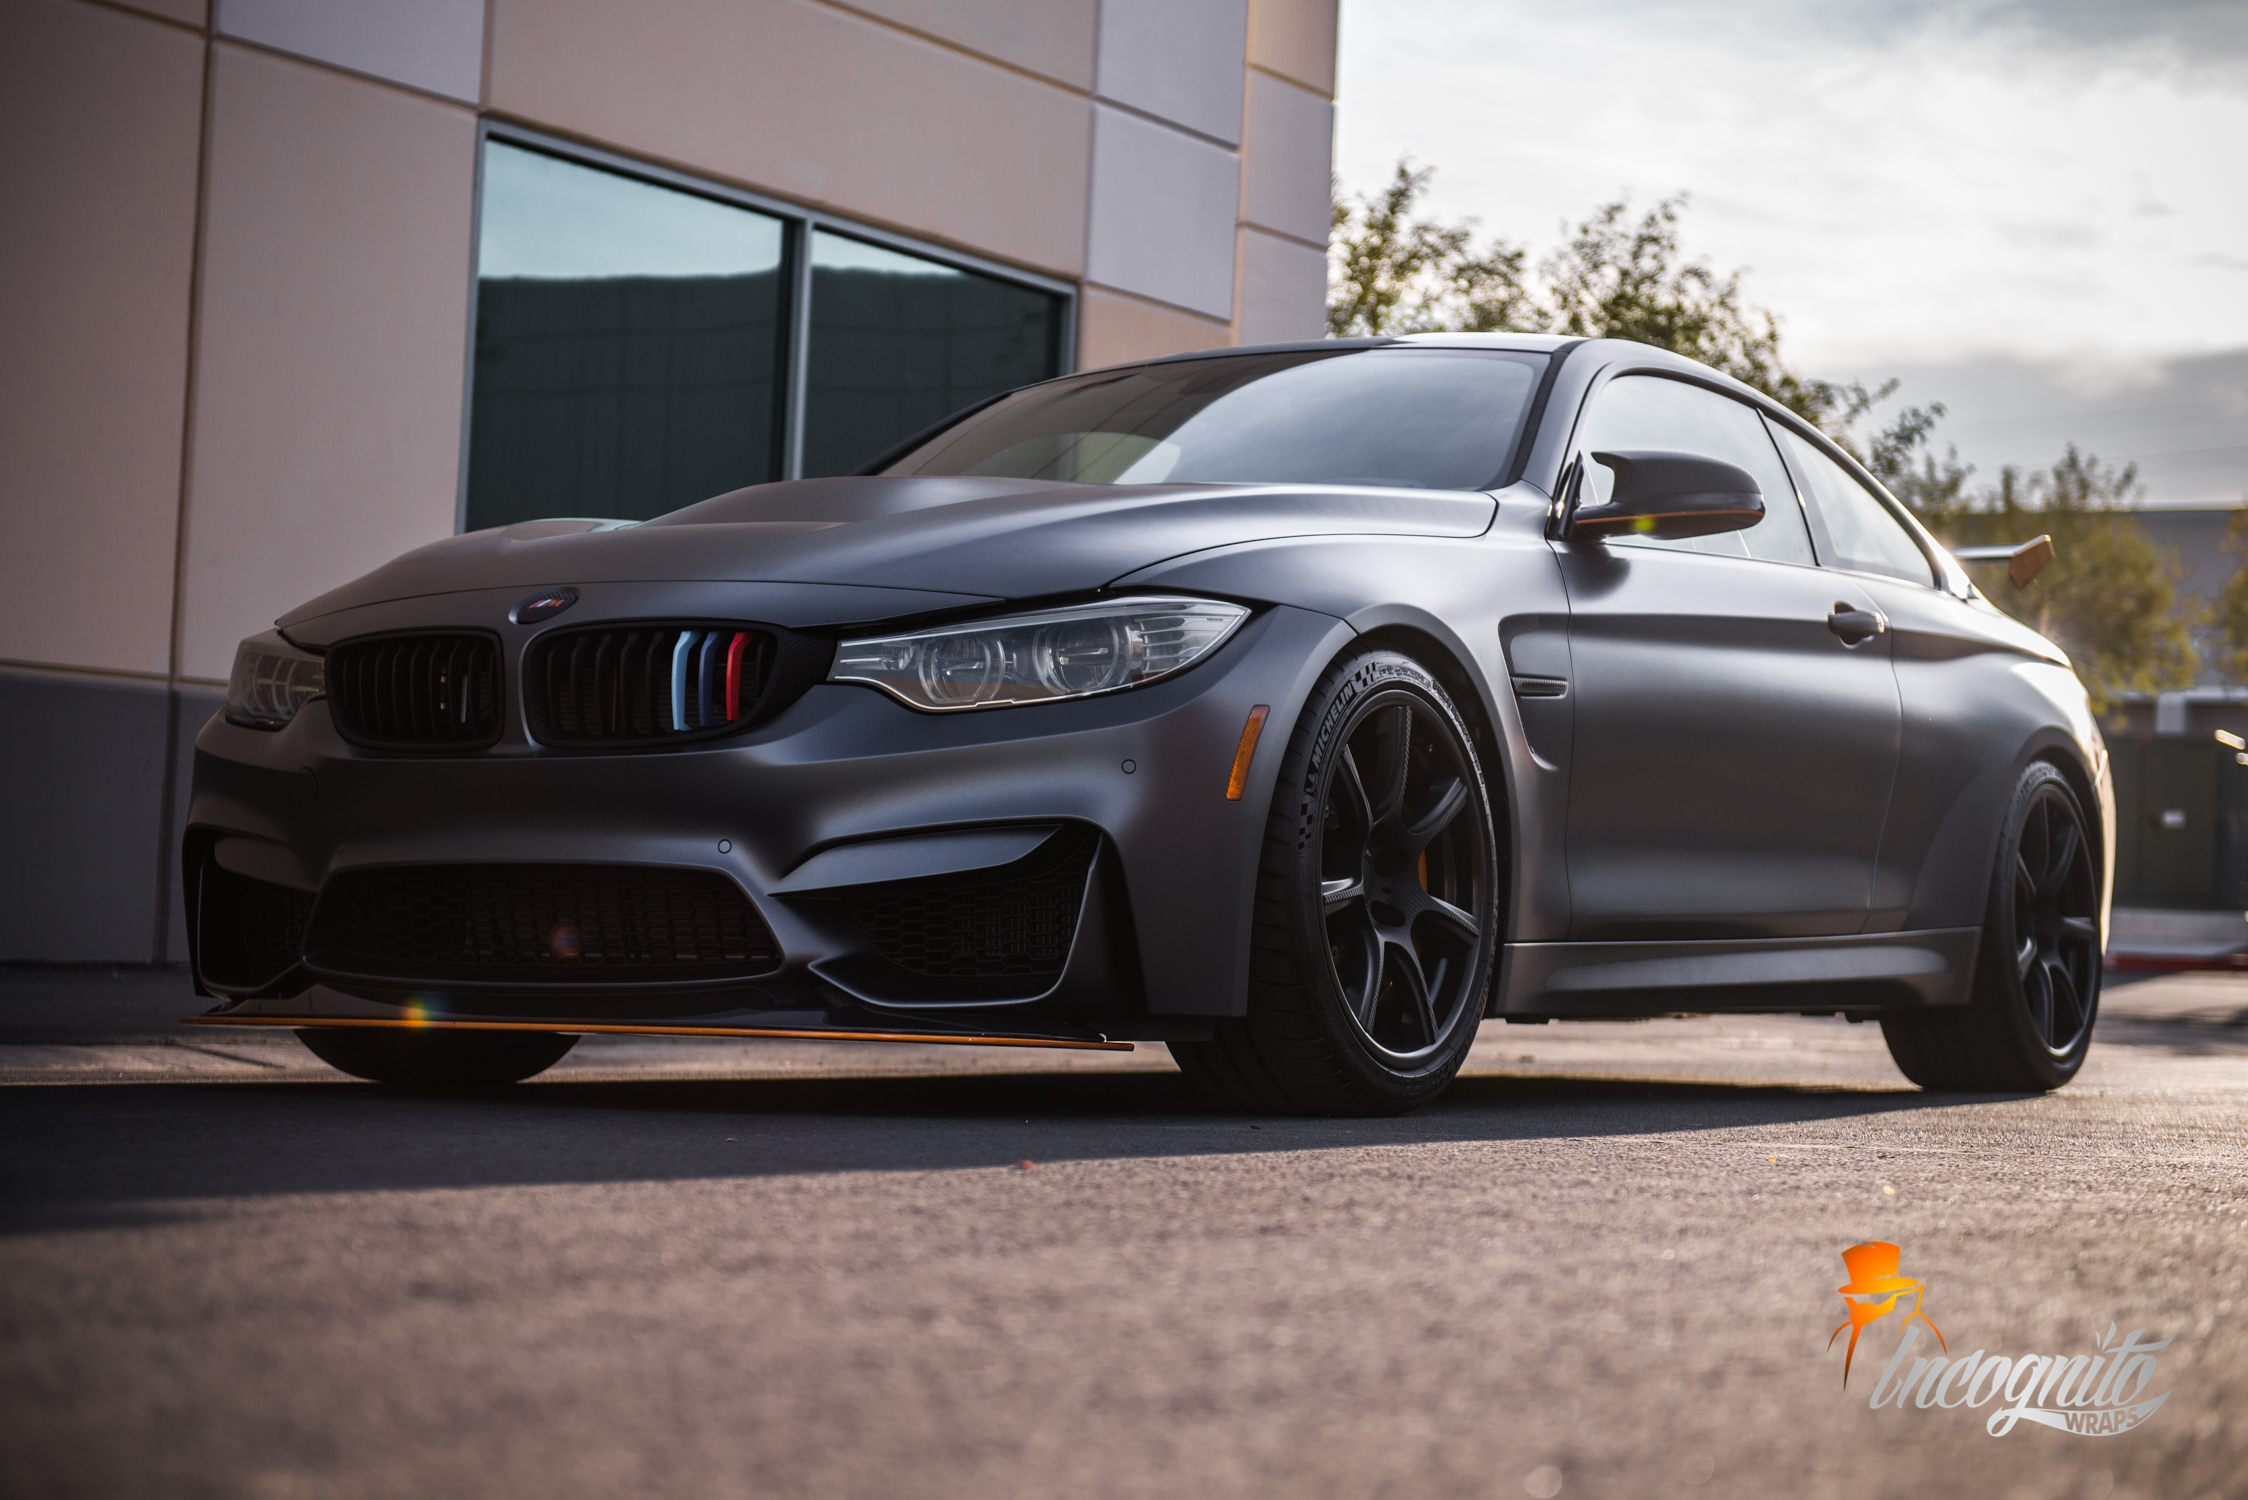 Bmw M4 Gts Acid Orange And Raw Carbon Incognito Wraps